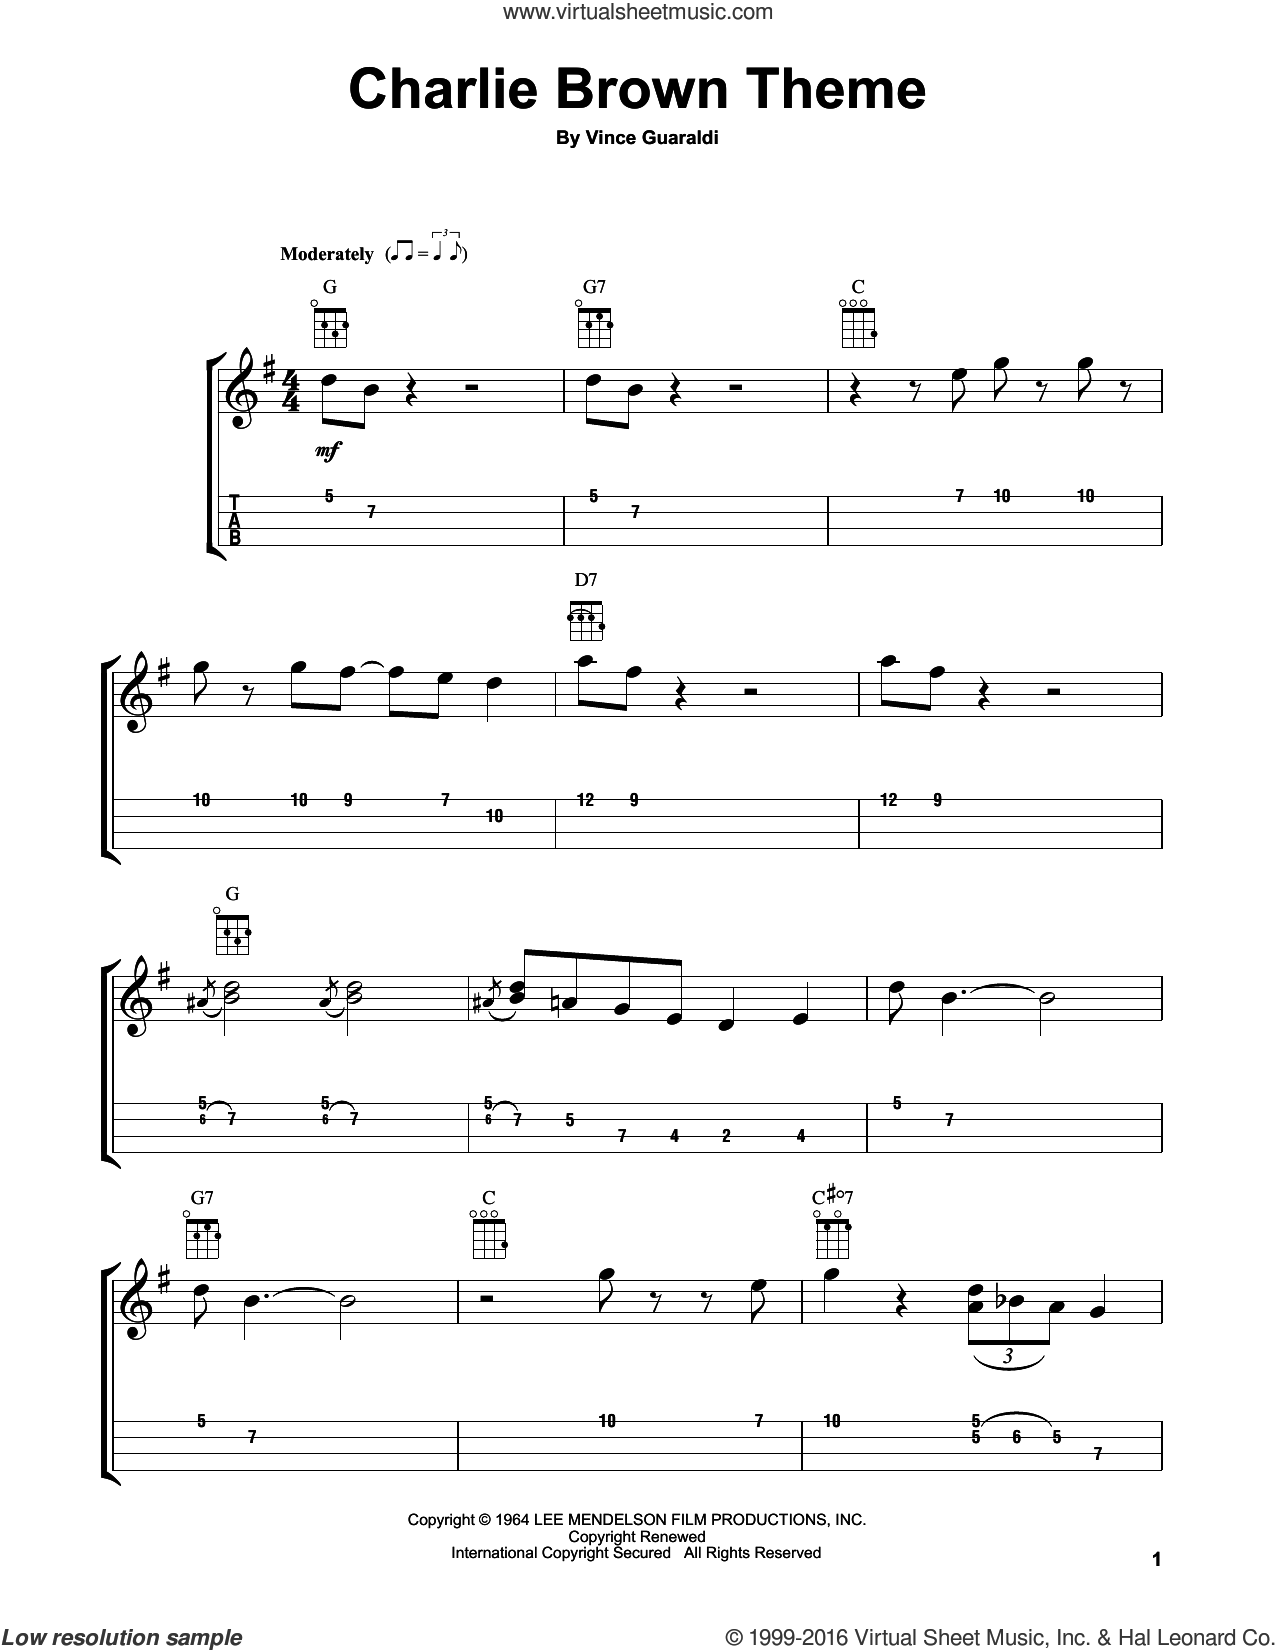 Charlie Brown Theme sheet music for ukulele by Vince Guaraldi, intermediate skill level